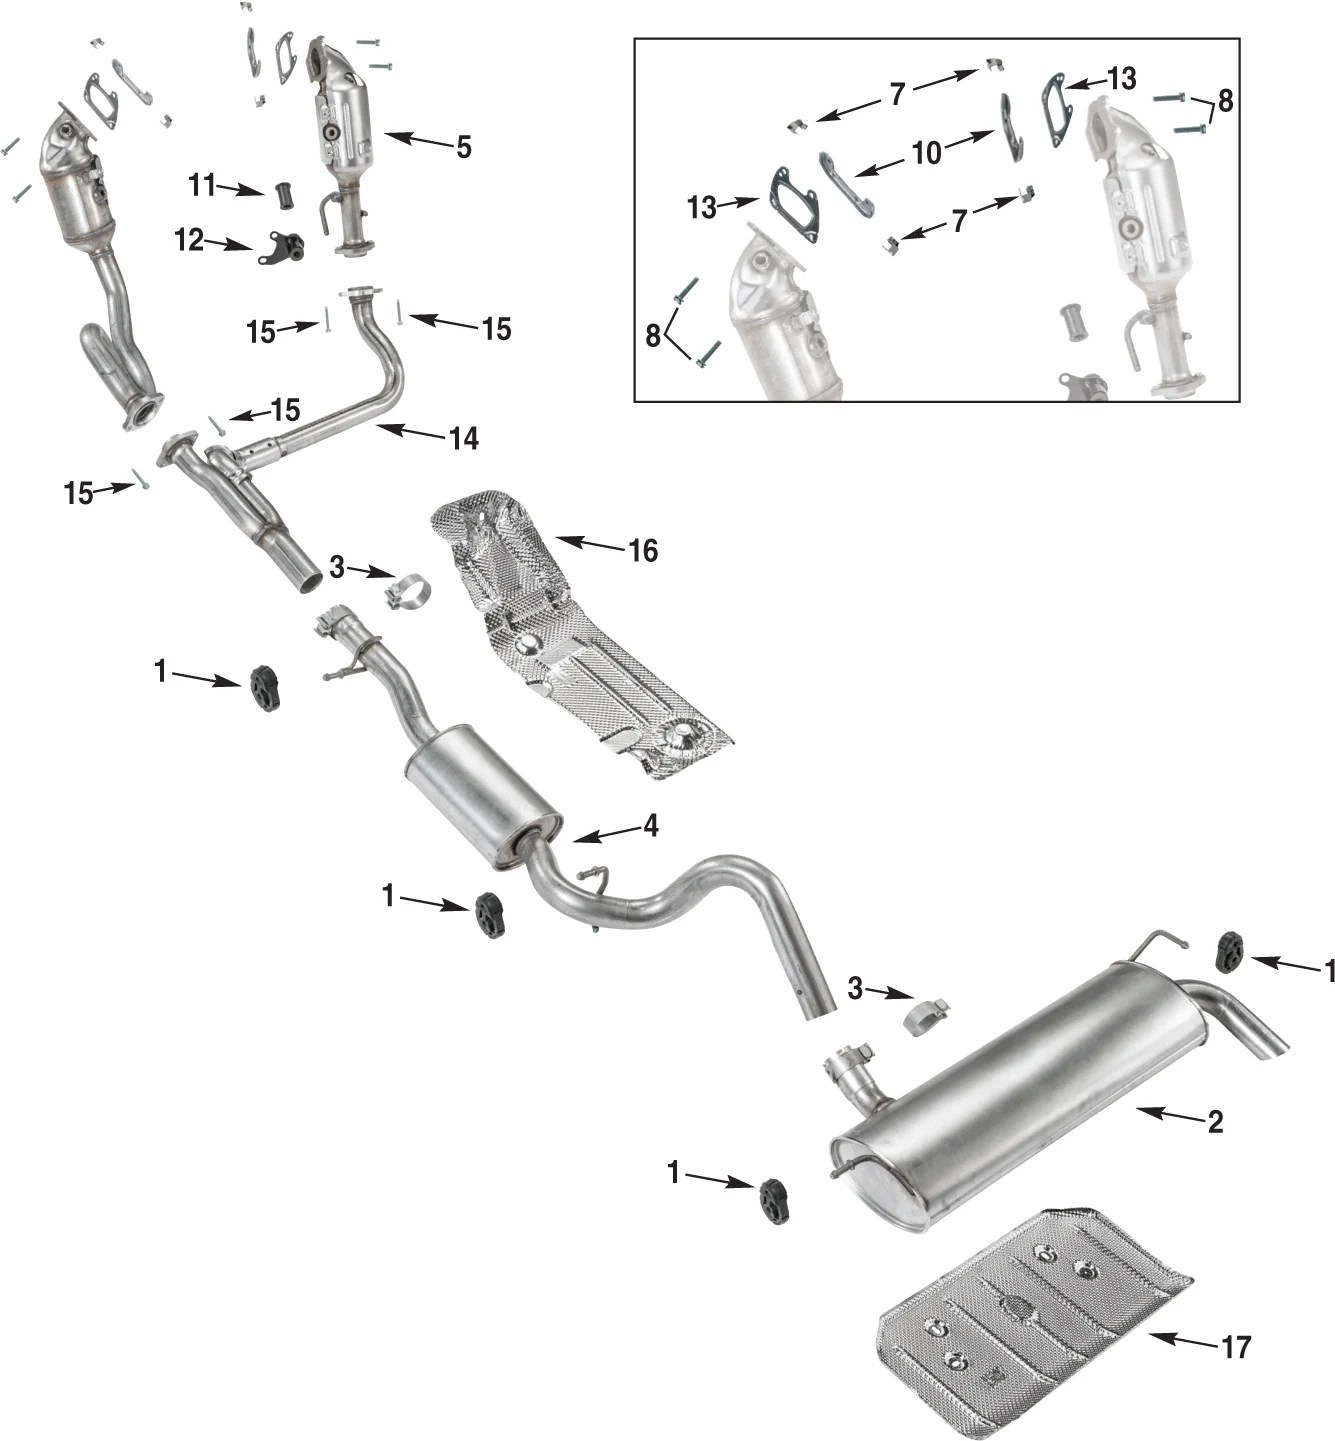 hight resolution of jeep wrangler jk exhaust parts 12 18 quadratec jeep wrangler yj exhaust system diagram further jeep wrangler exhaust